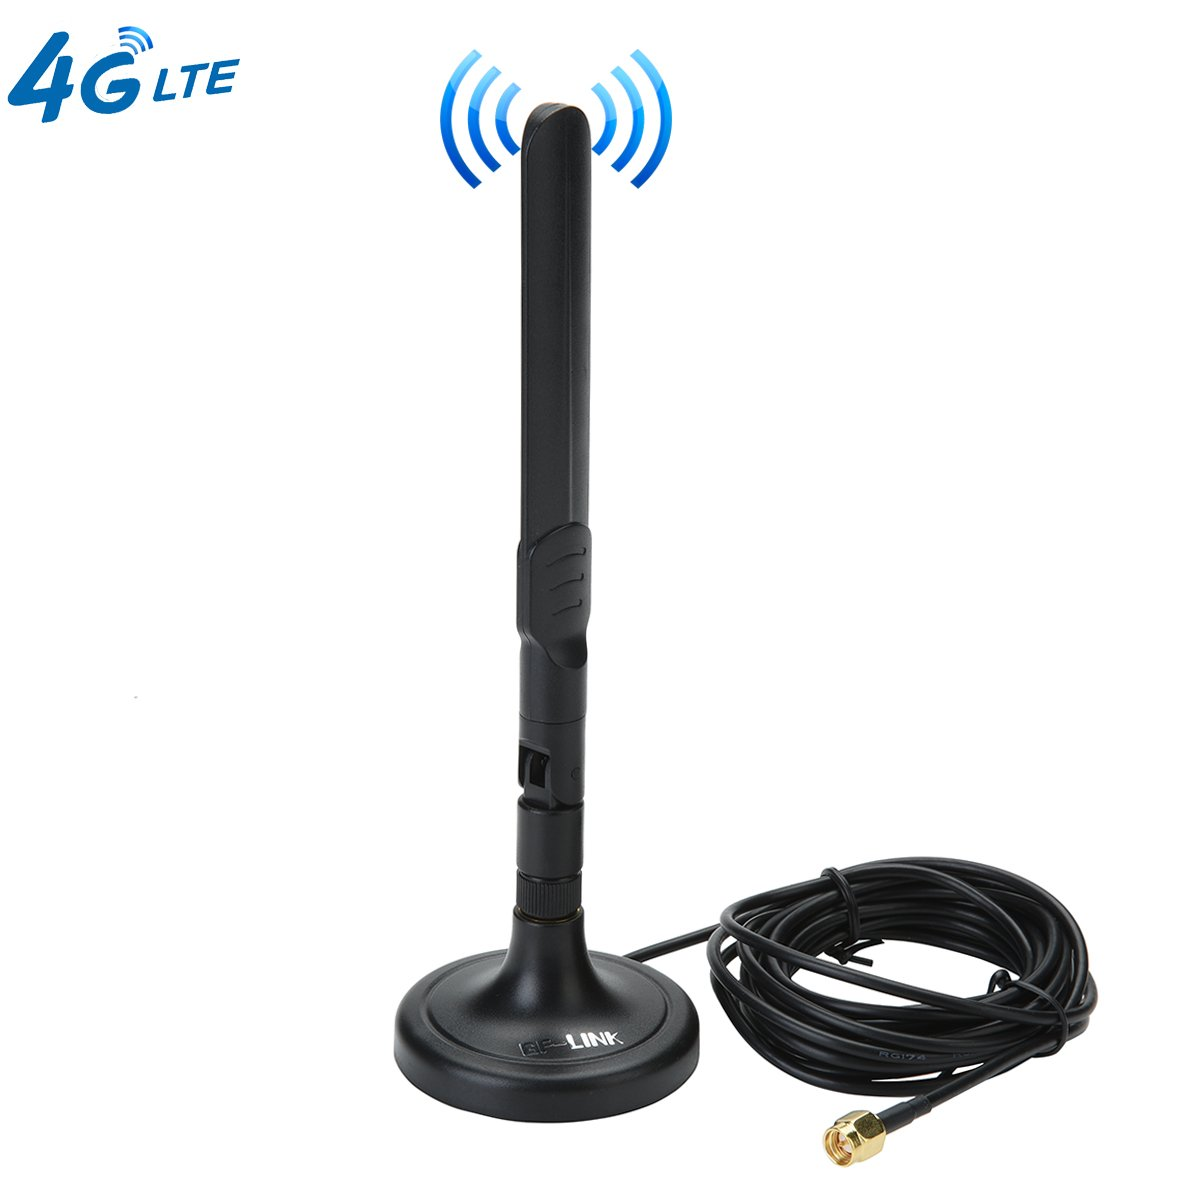 Magnet Antenna 3G 4G LTE 3dBi SMA Male Antennas with Magnetic Sucker for Mobile Phone Signal Enhancer Repeater